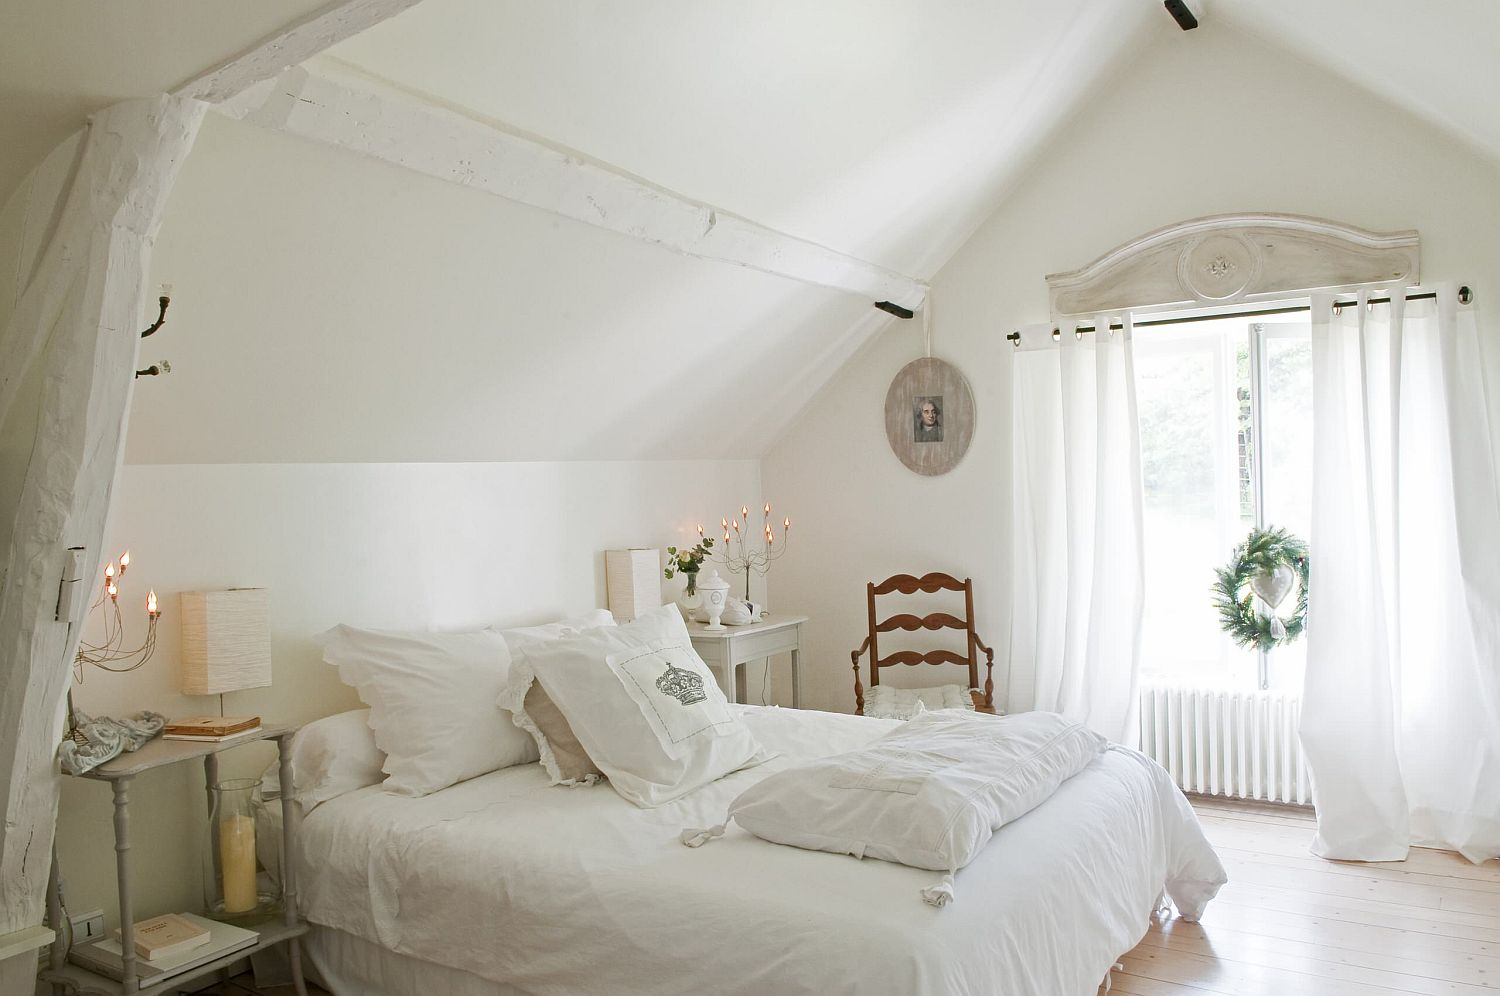 French counry style and a sense of delicate sophistication fill this light-filled, white attic bedroom